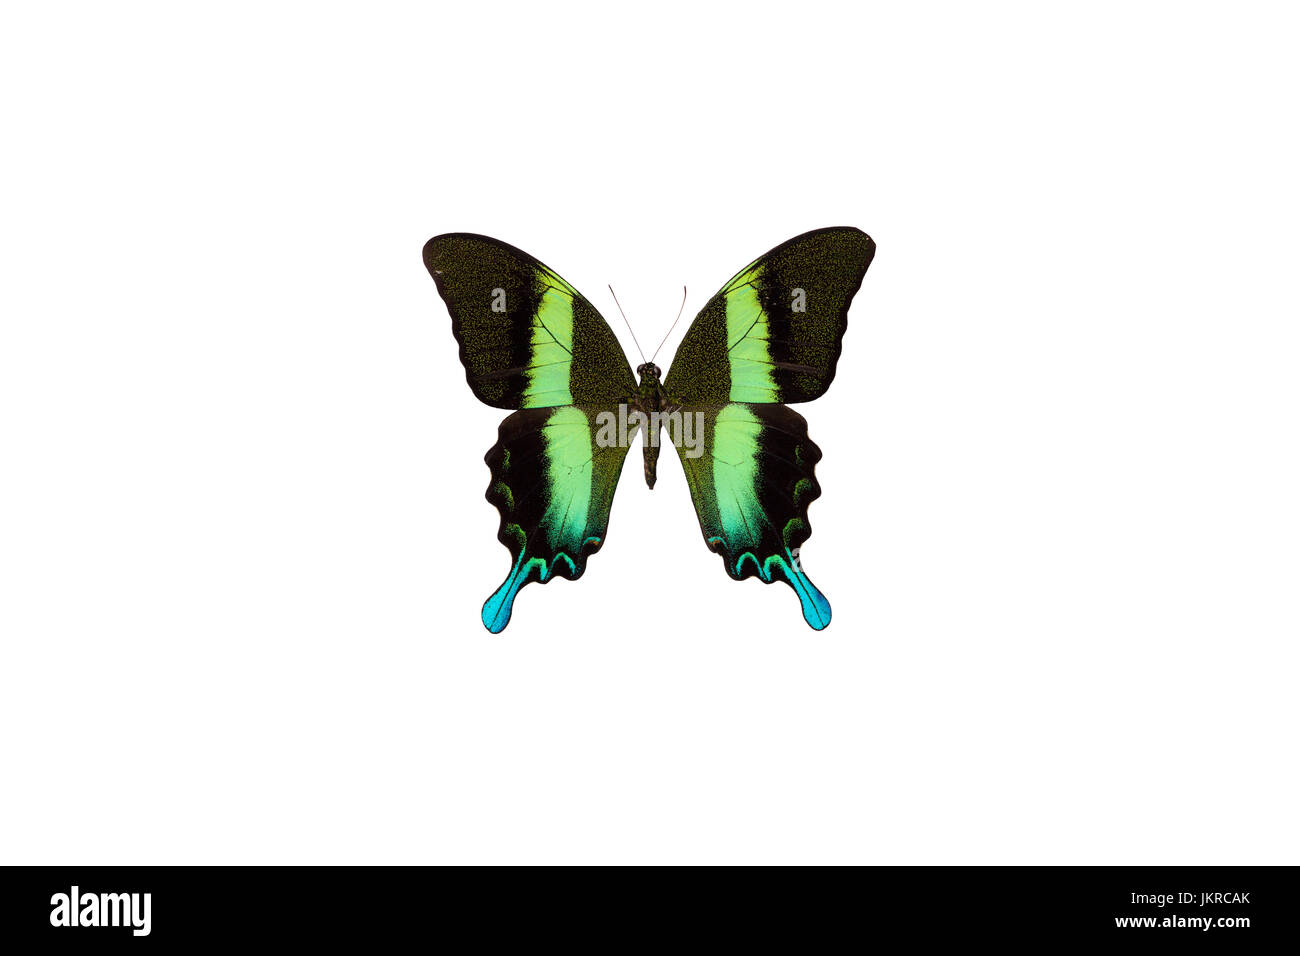 A green swallowtail (Papilio blumei) caught from Ceram island, Indonesia Stock Photo